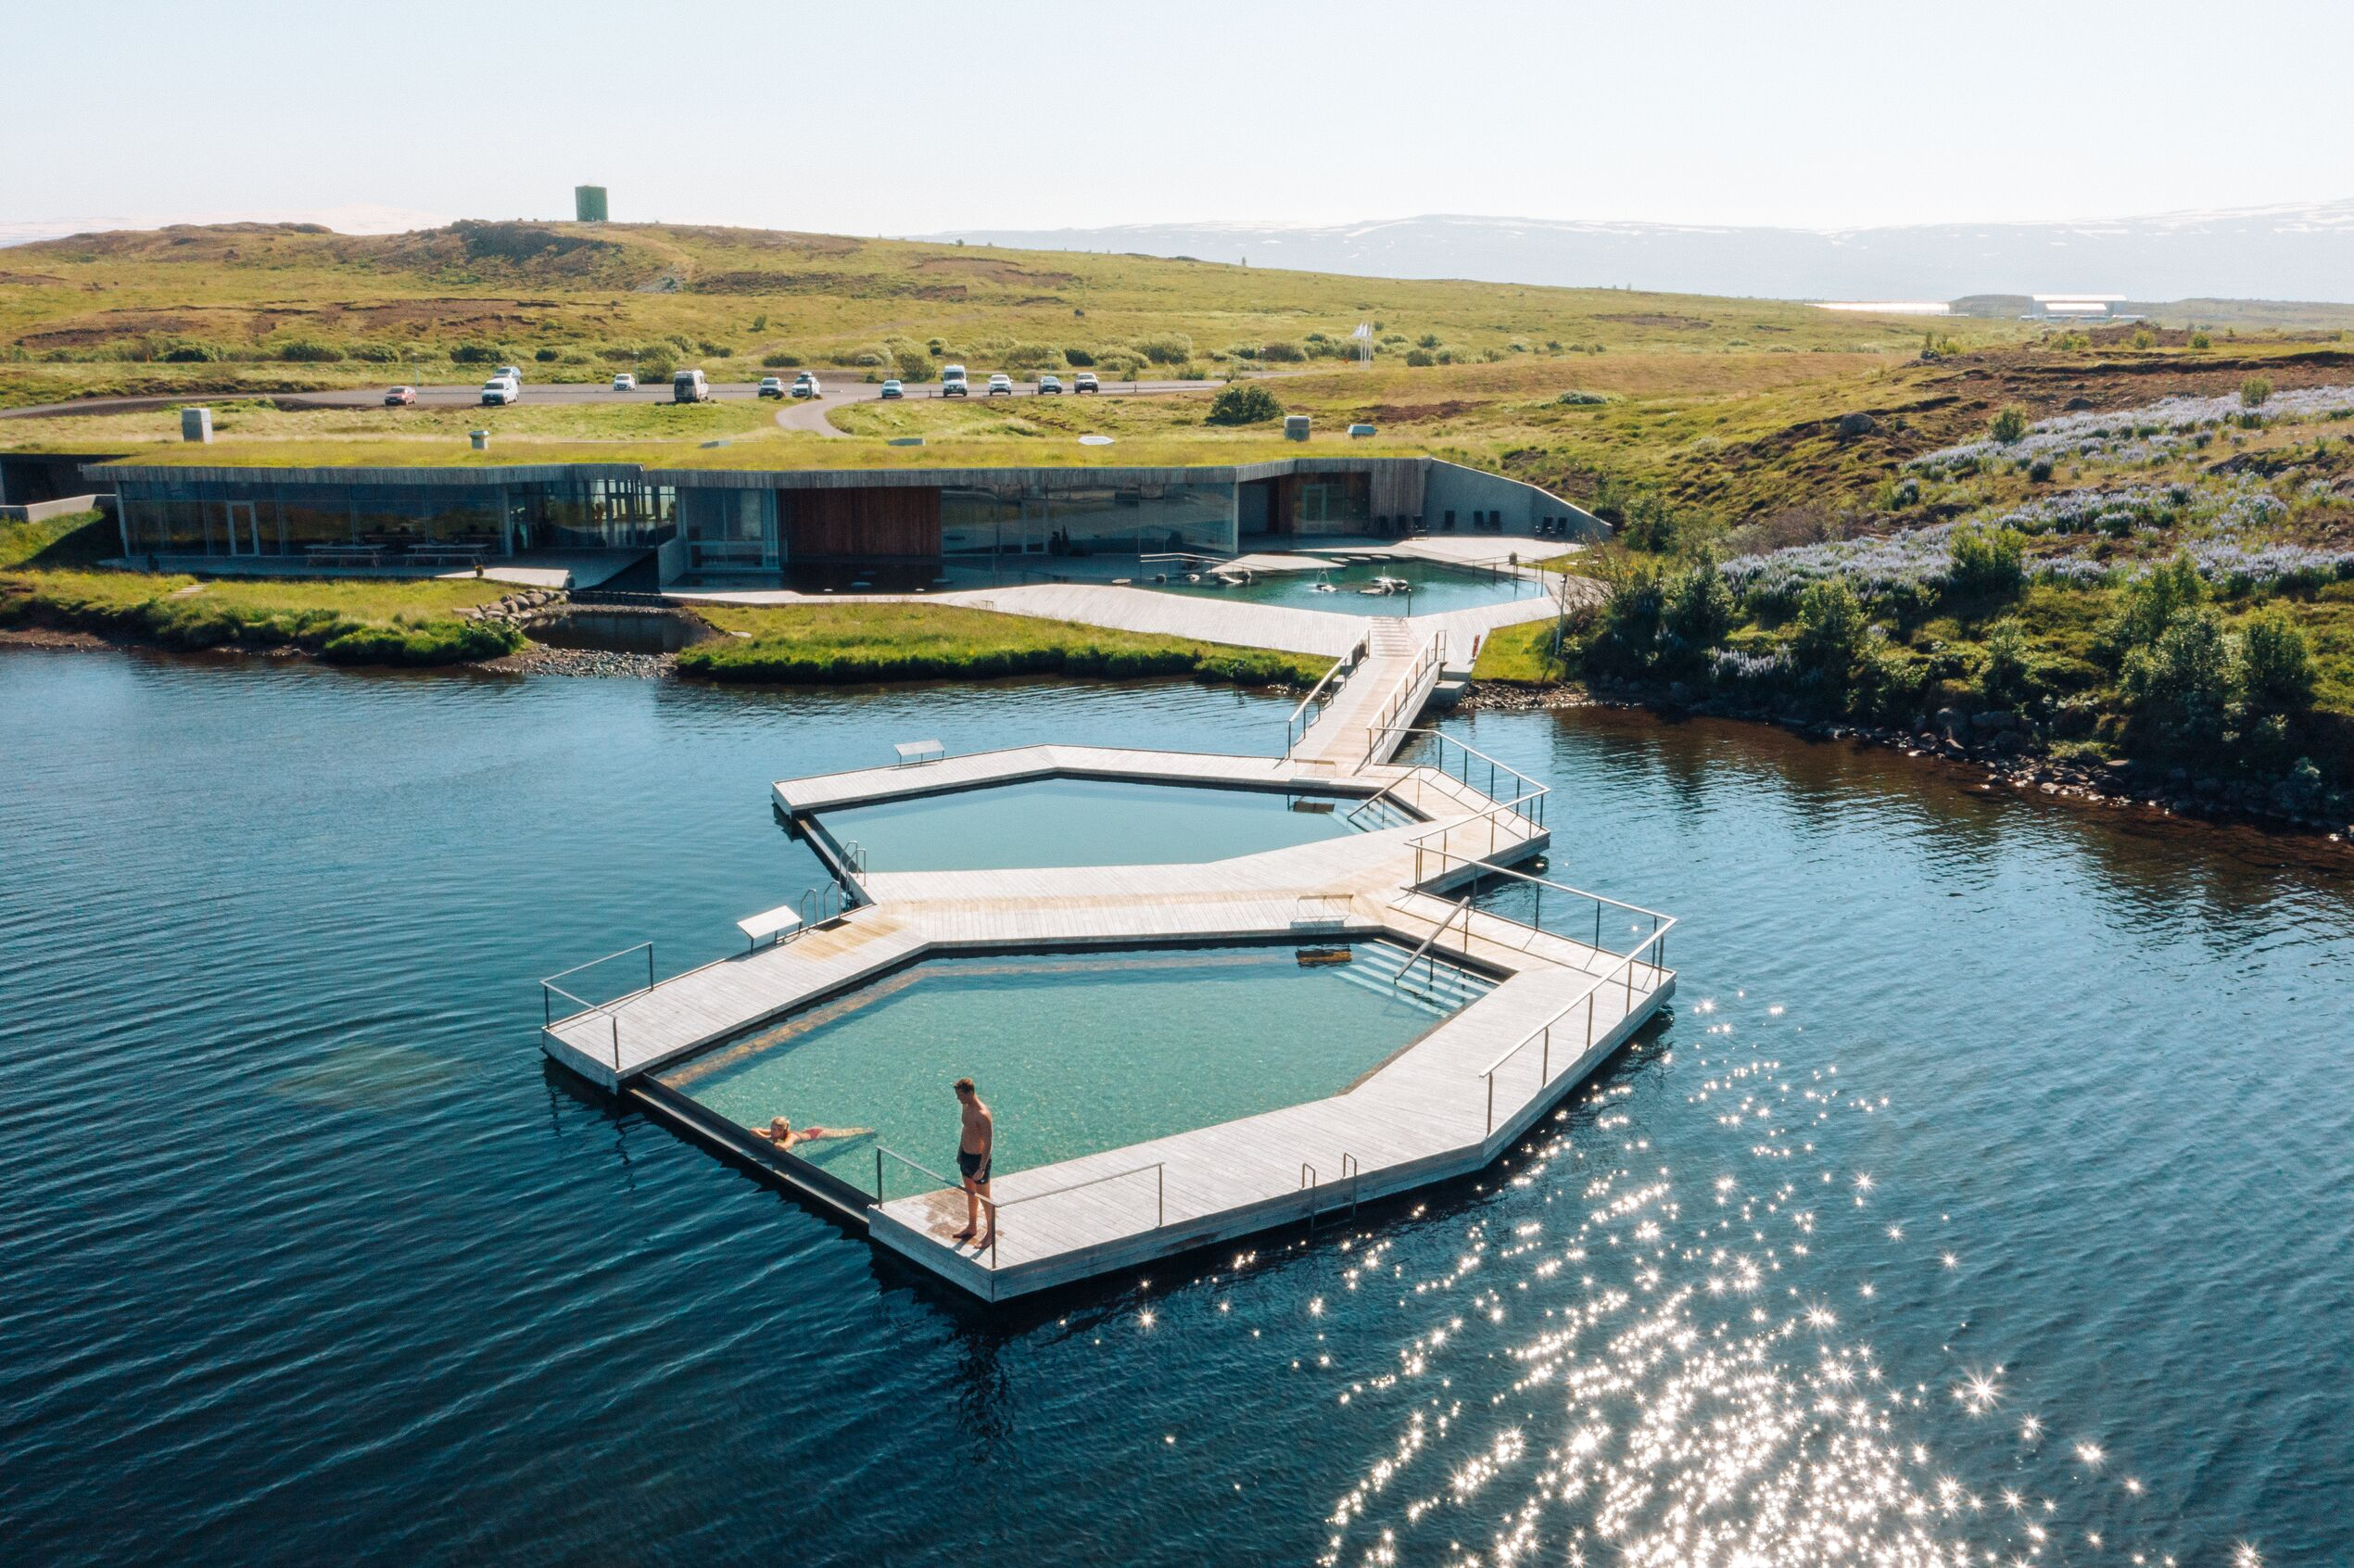 Vök Baths in East Iceland, pictured from a slightly overhead drone